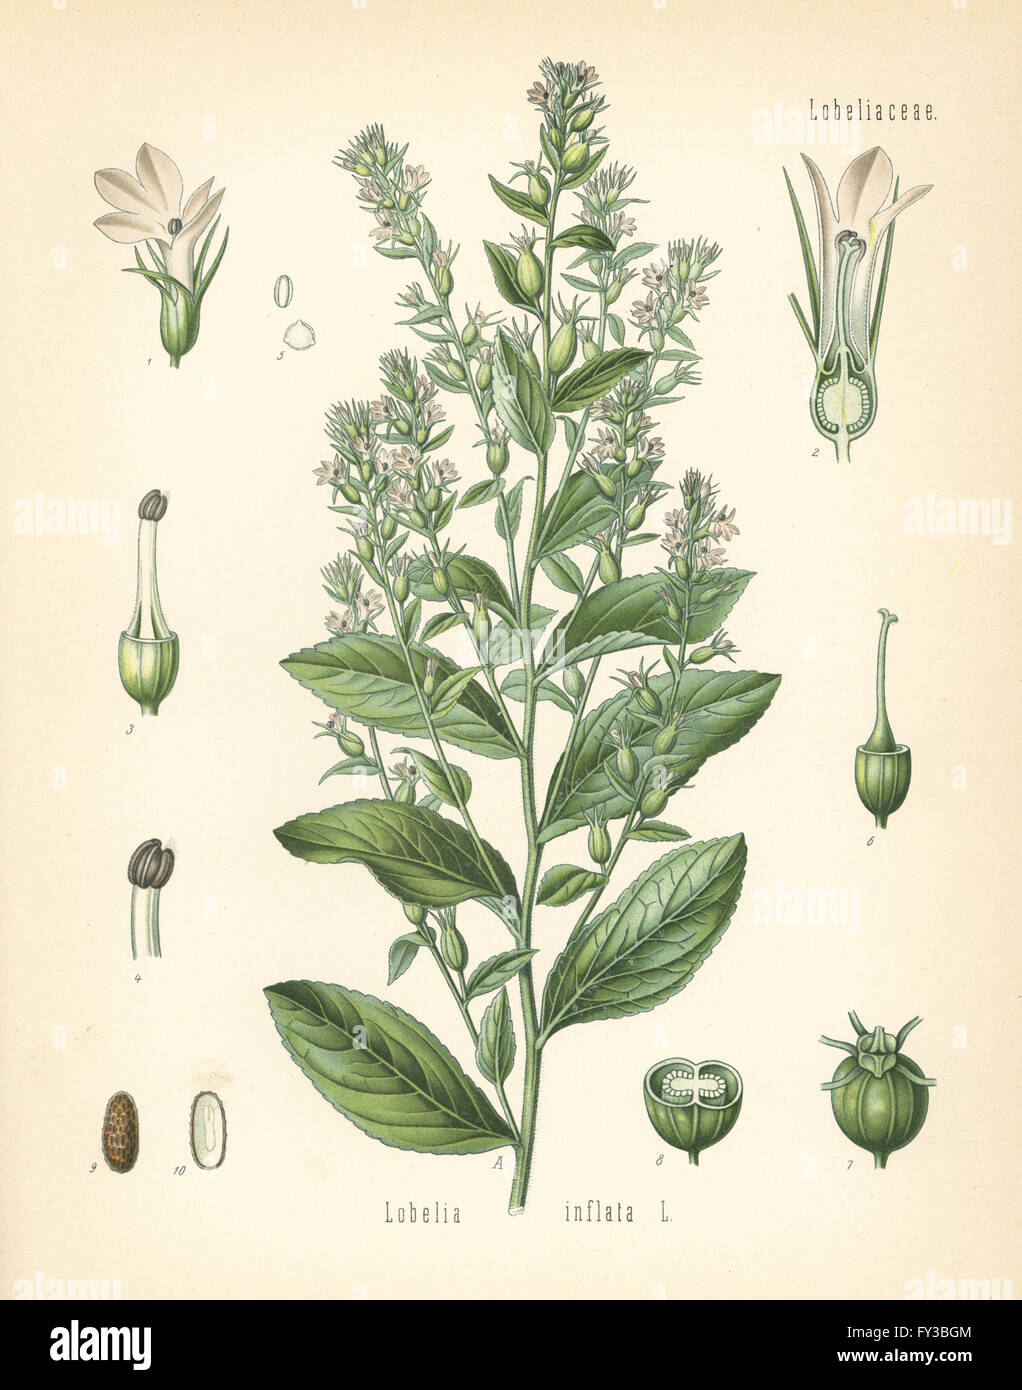 Indian Tobacco Or Puke Weed Lobelia Inflata Chromolithograph After